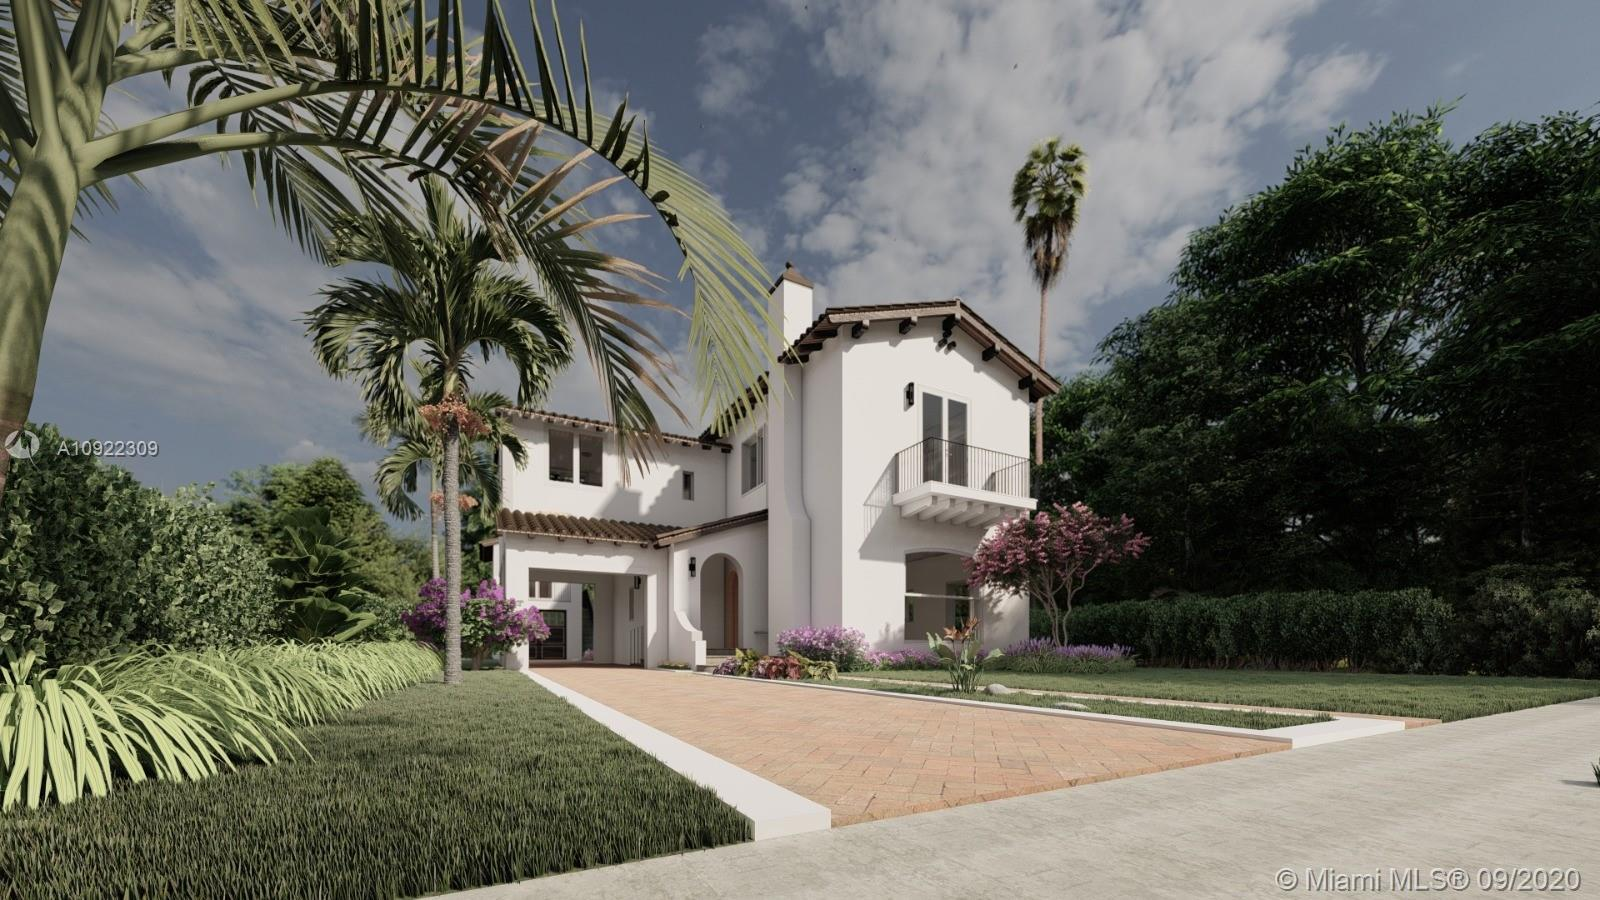 UNDER CONSTRUCTION. This majestic Tuscan-inspired house  it's located at Valencia Avenue. A short shot away from the Biltmore Hotel golf and spa. Two story house, 4 bedroom, 3.5 baths and Garage, impact glass window. Custom Kitchen European Design with Sub-zero and Wolf Appliances. Guess House beside pool with garage that can be converted into a game room.  Fabulous space with covered terrace for lounging/dining, summer kitchen overlooking the enchanting pool. Elegance finishing, beautiful baths design!